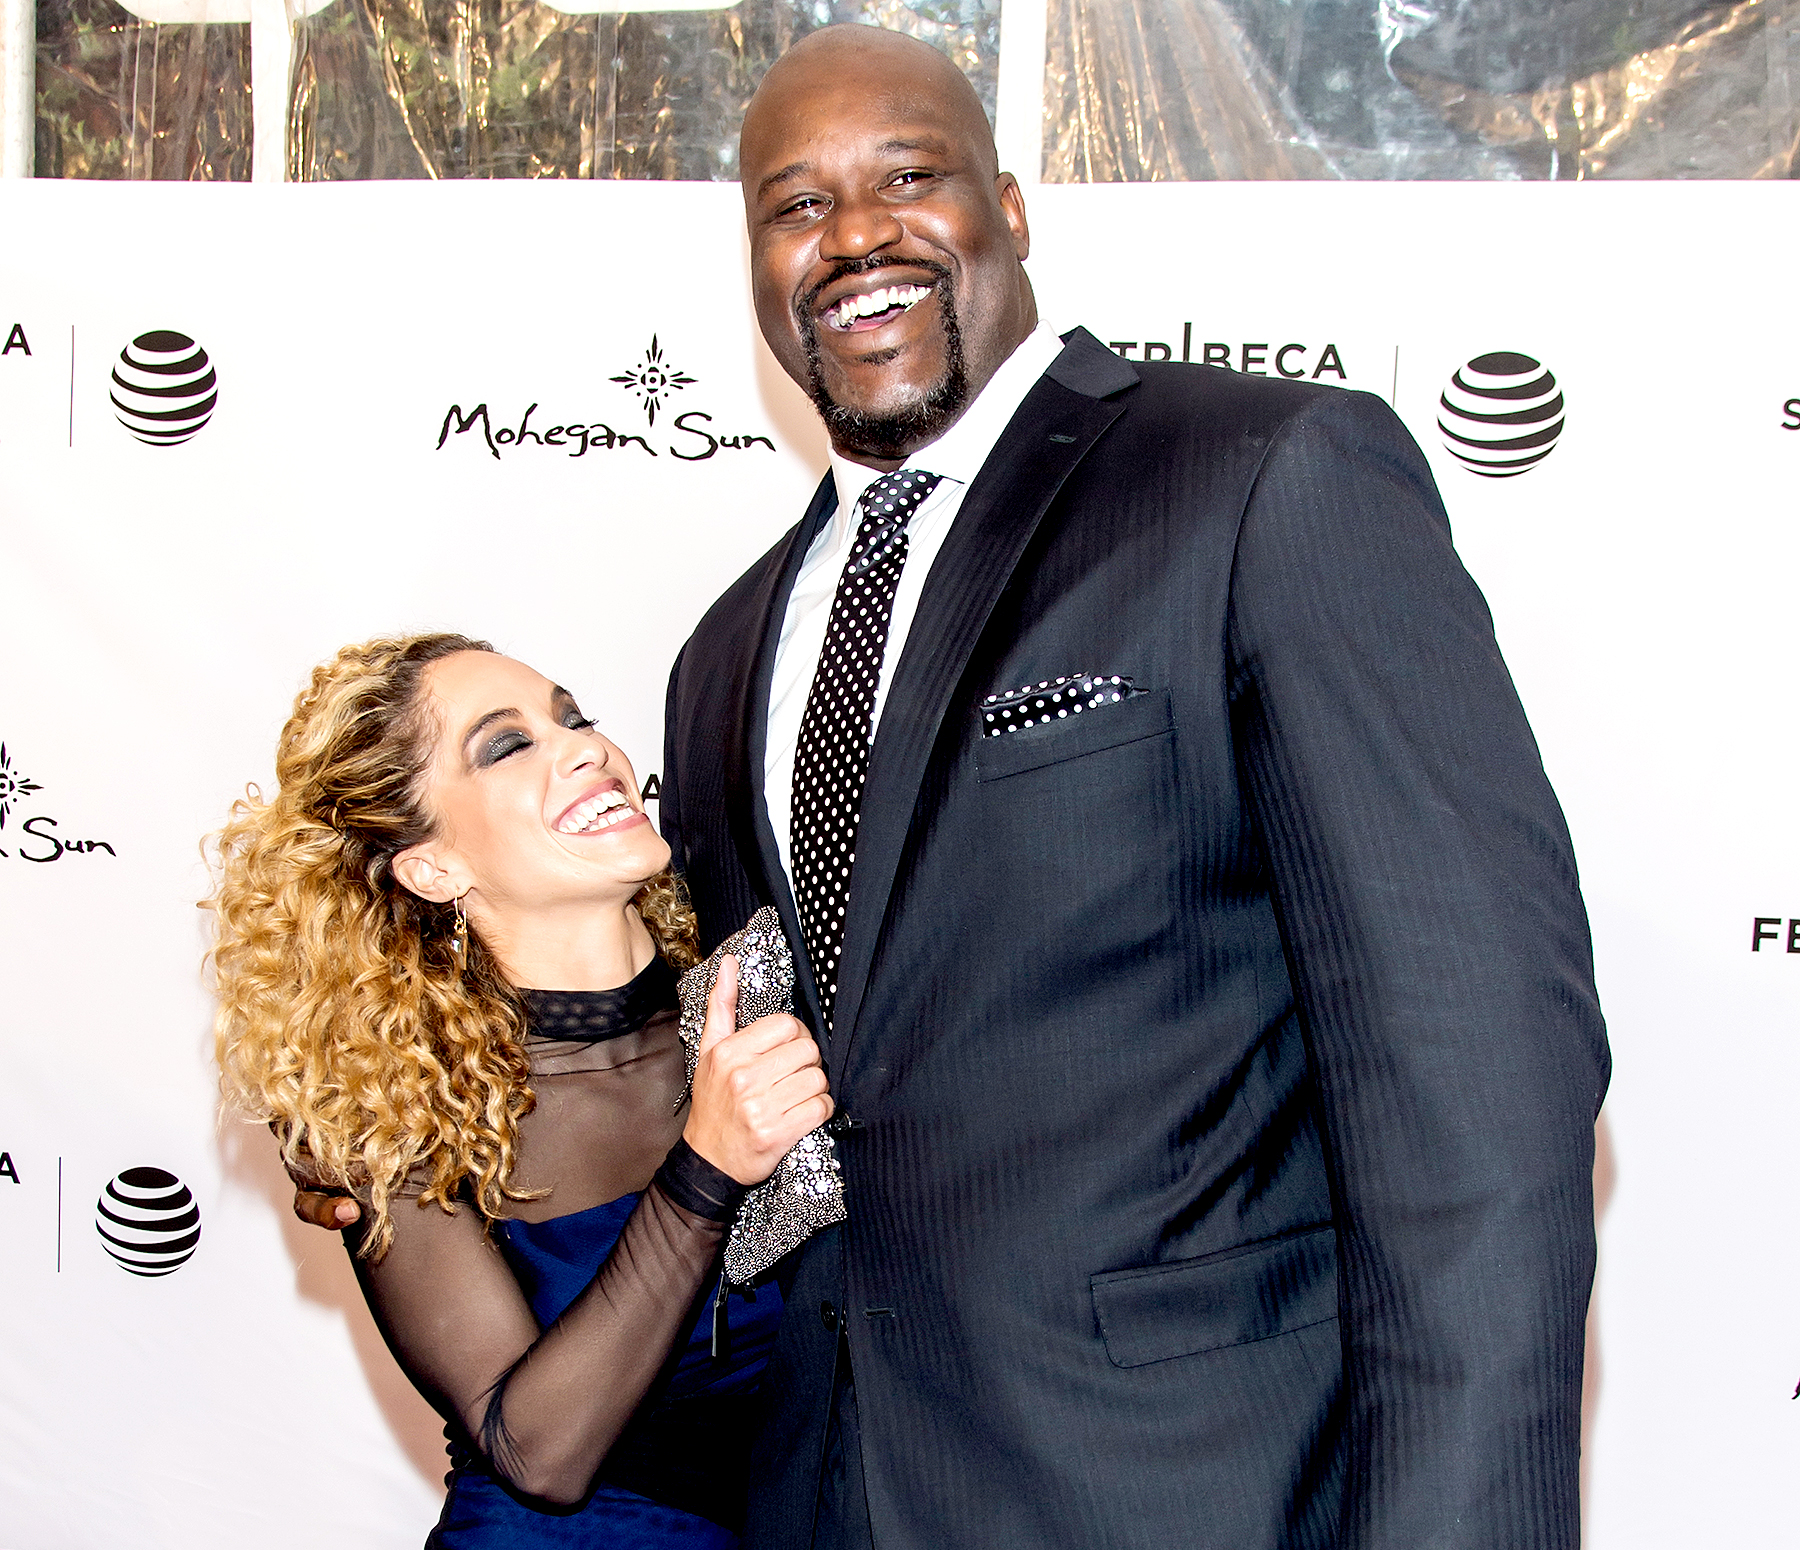 Who shaquille oneal is dating